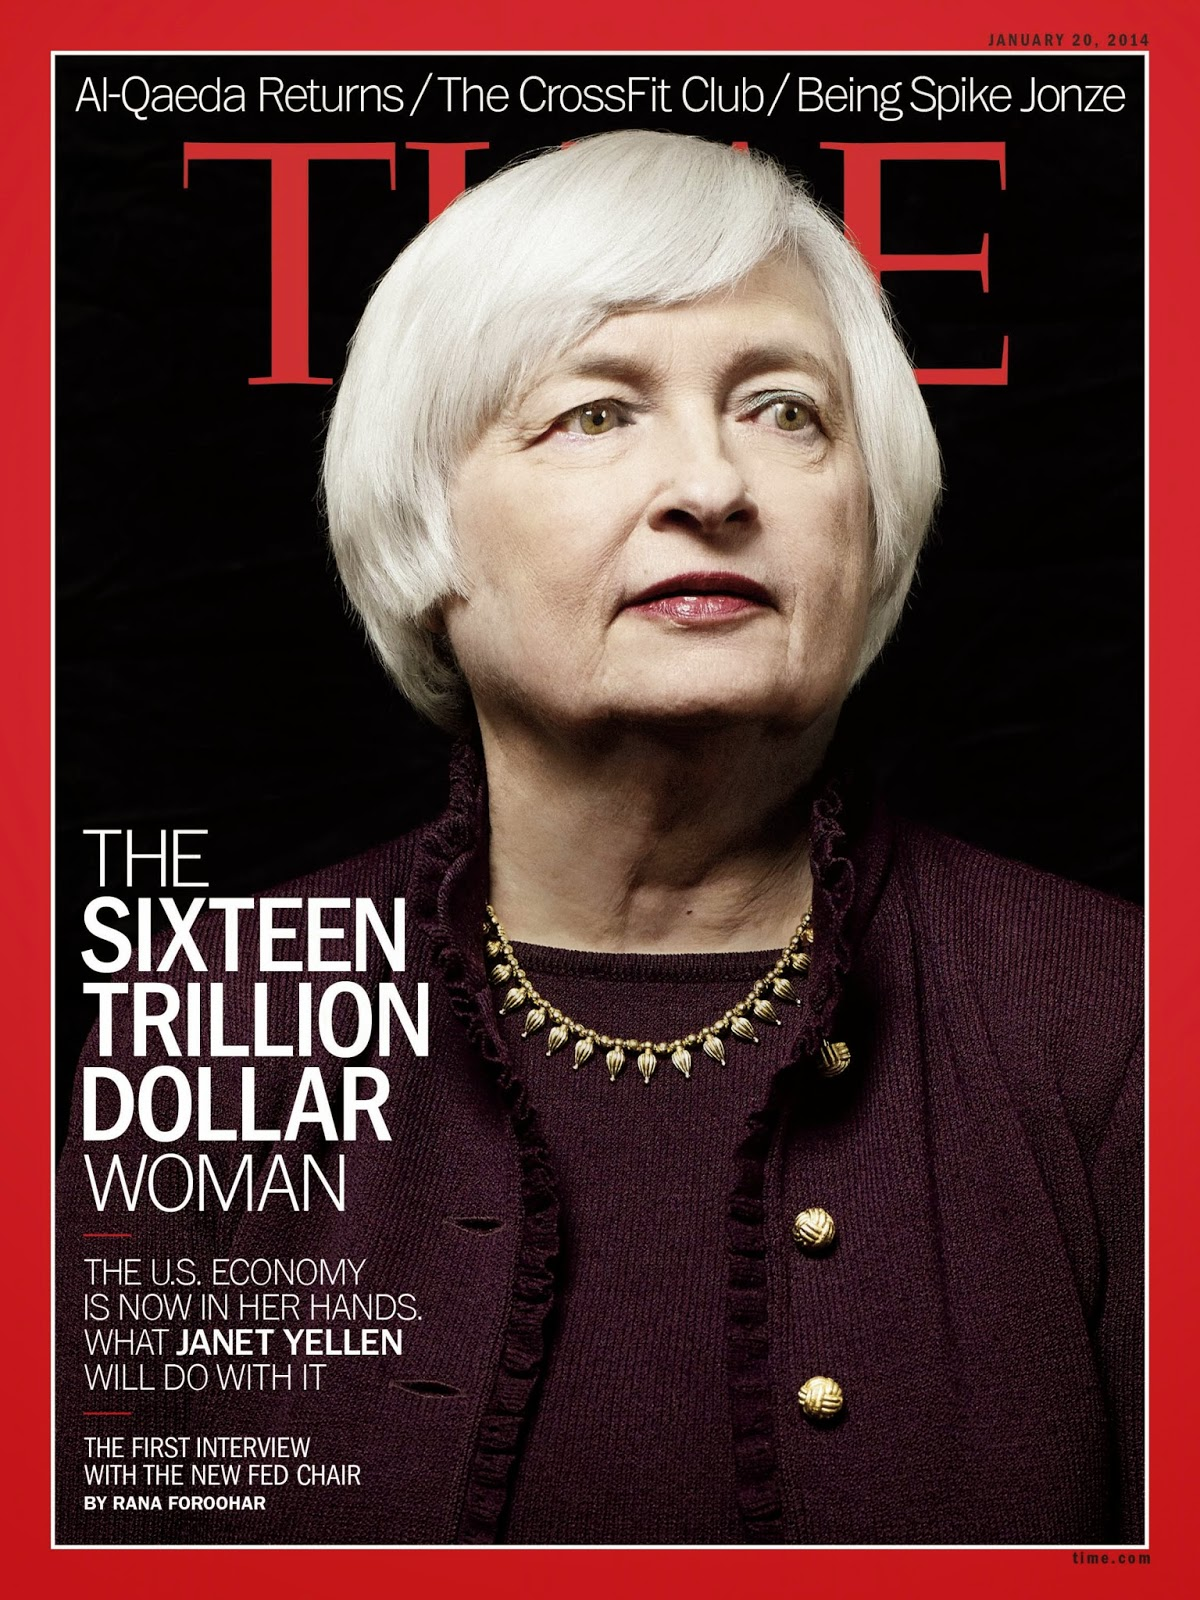 day trading with Janet Yellen